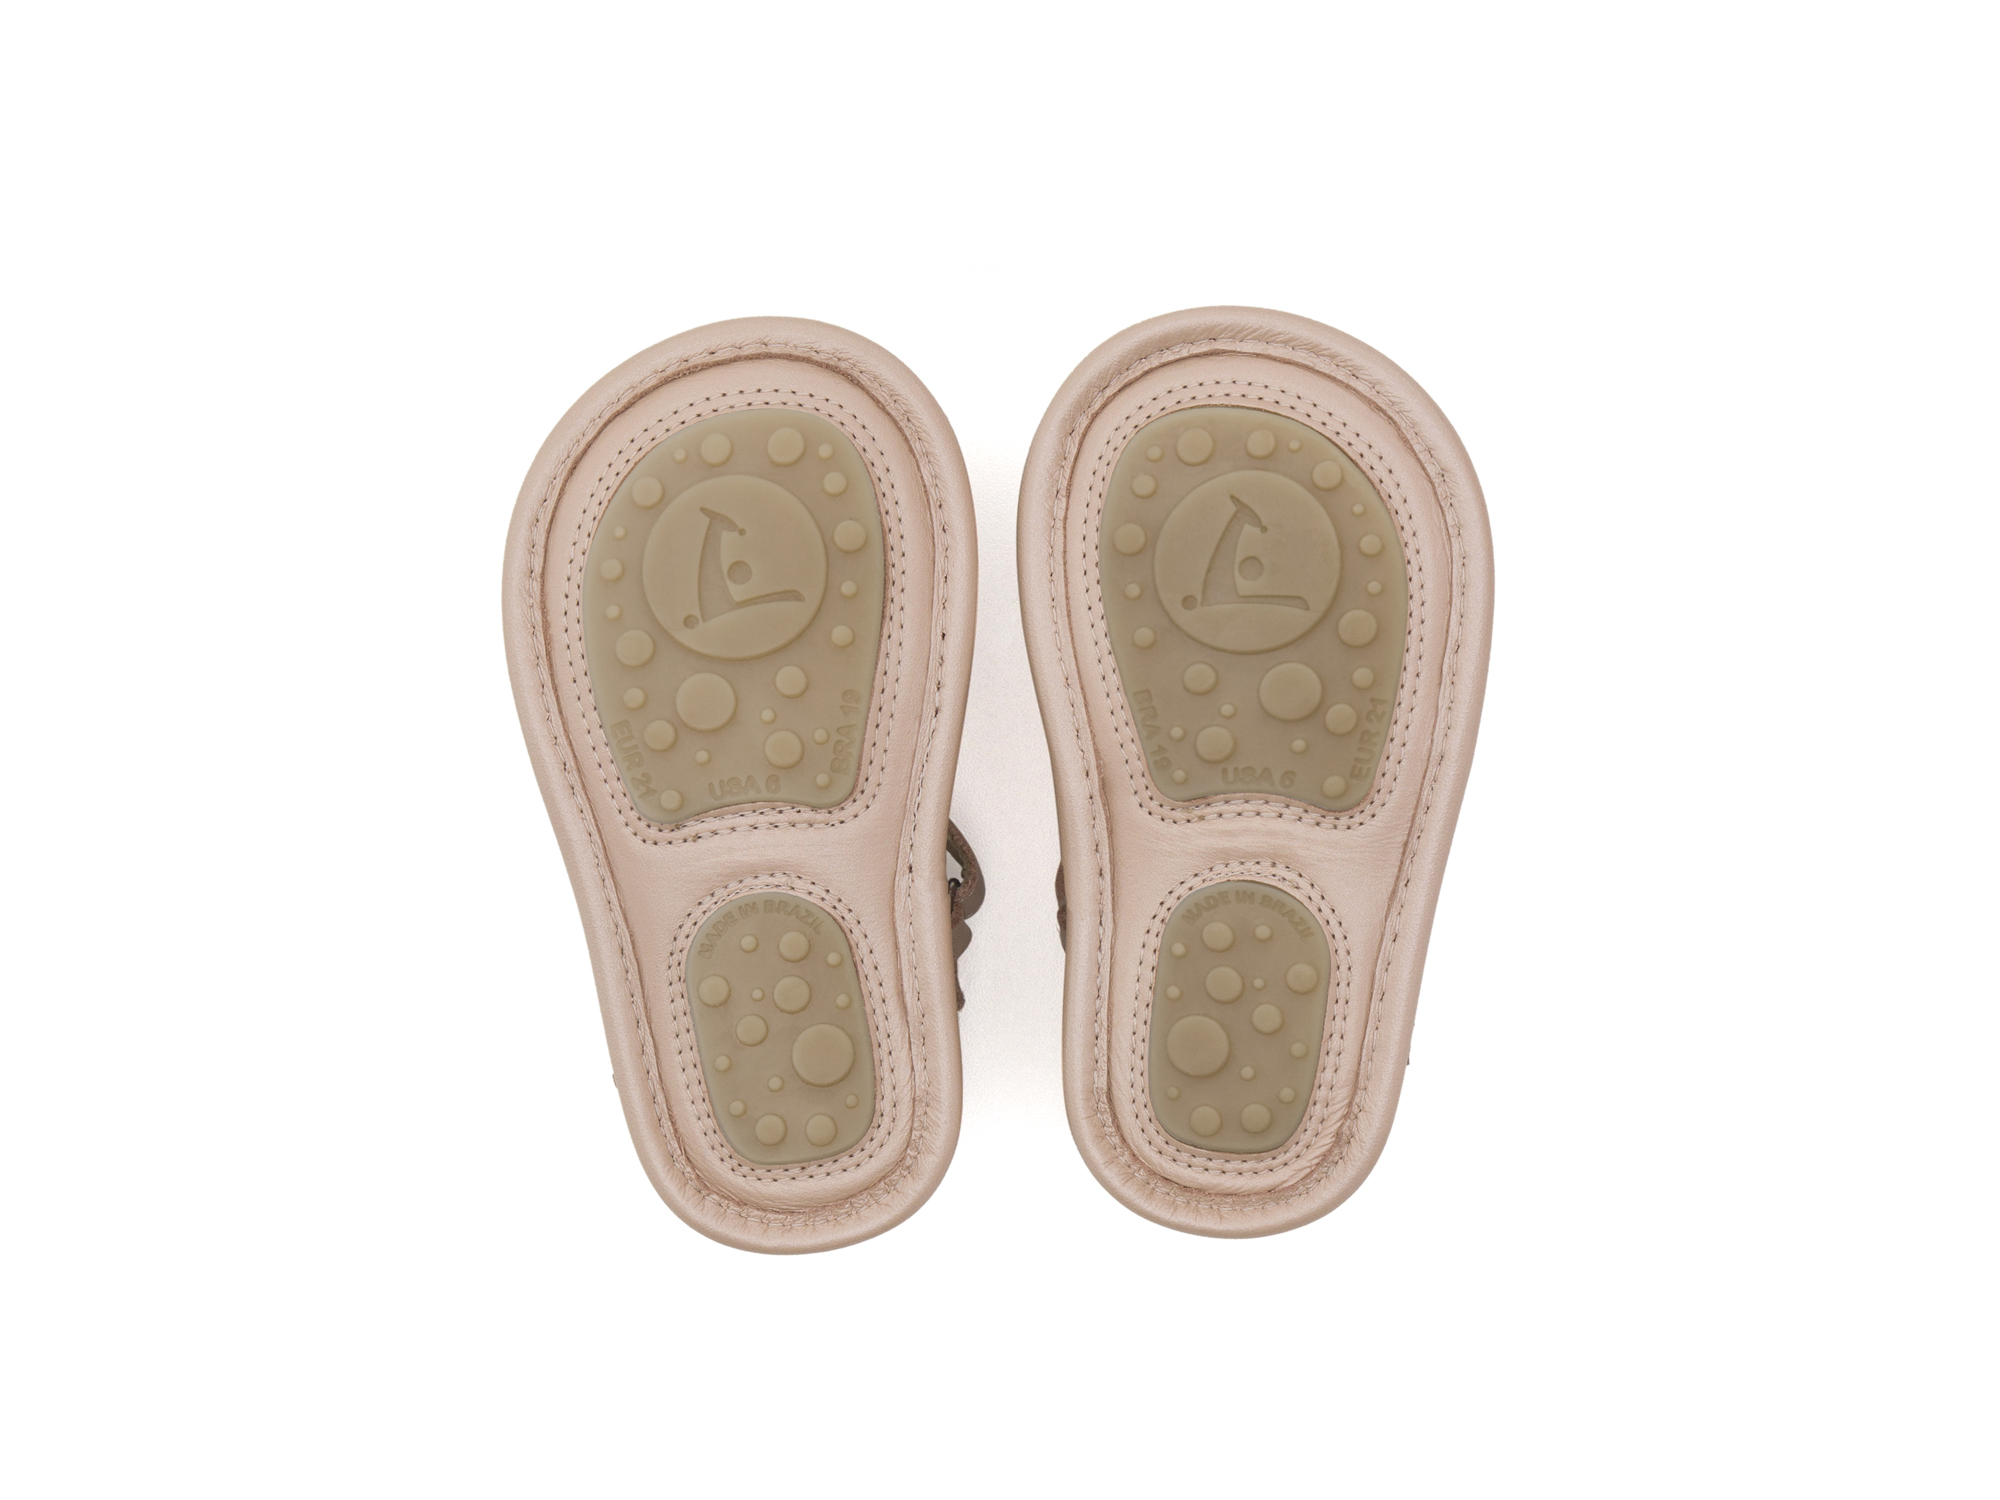 Sandal Mandaly Pink Perl/ Golden Shine Baby for ages 0 to 2 years - 3